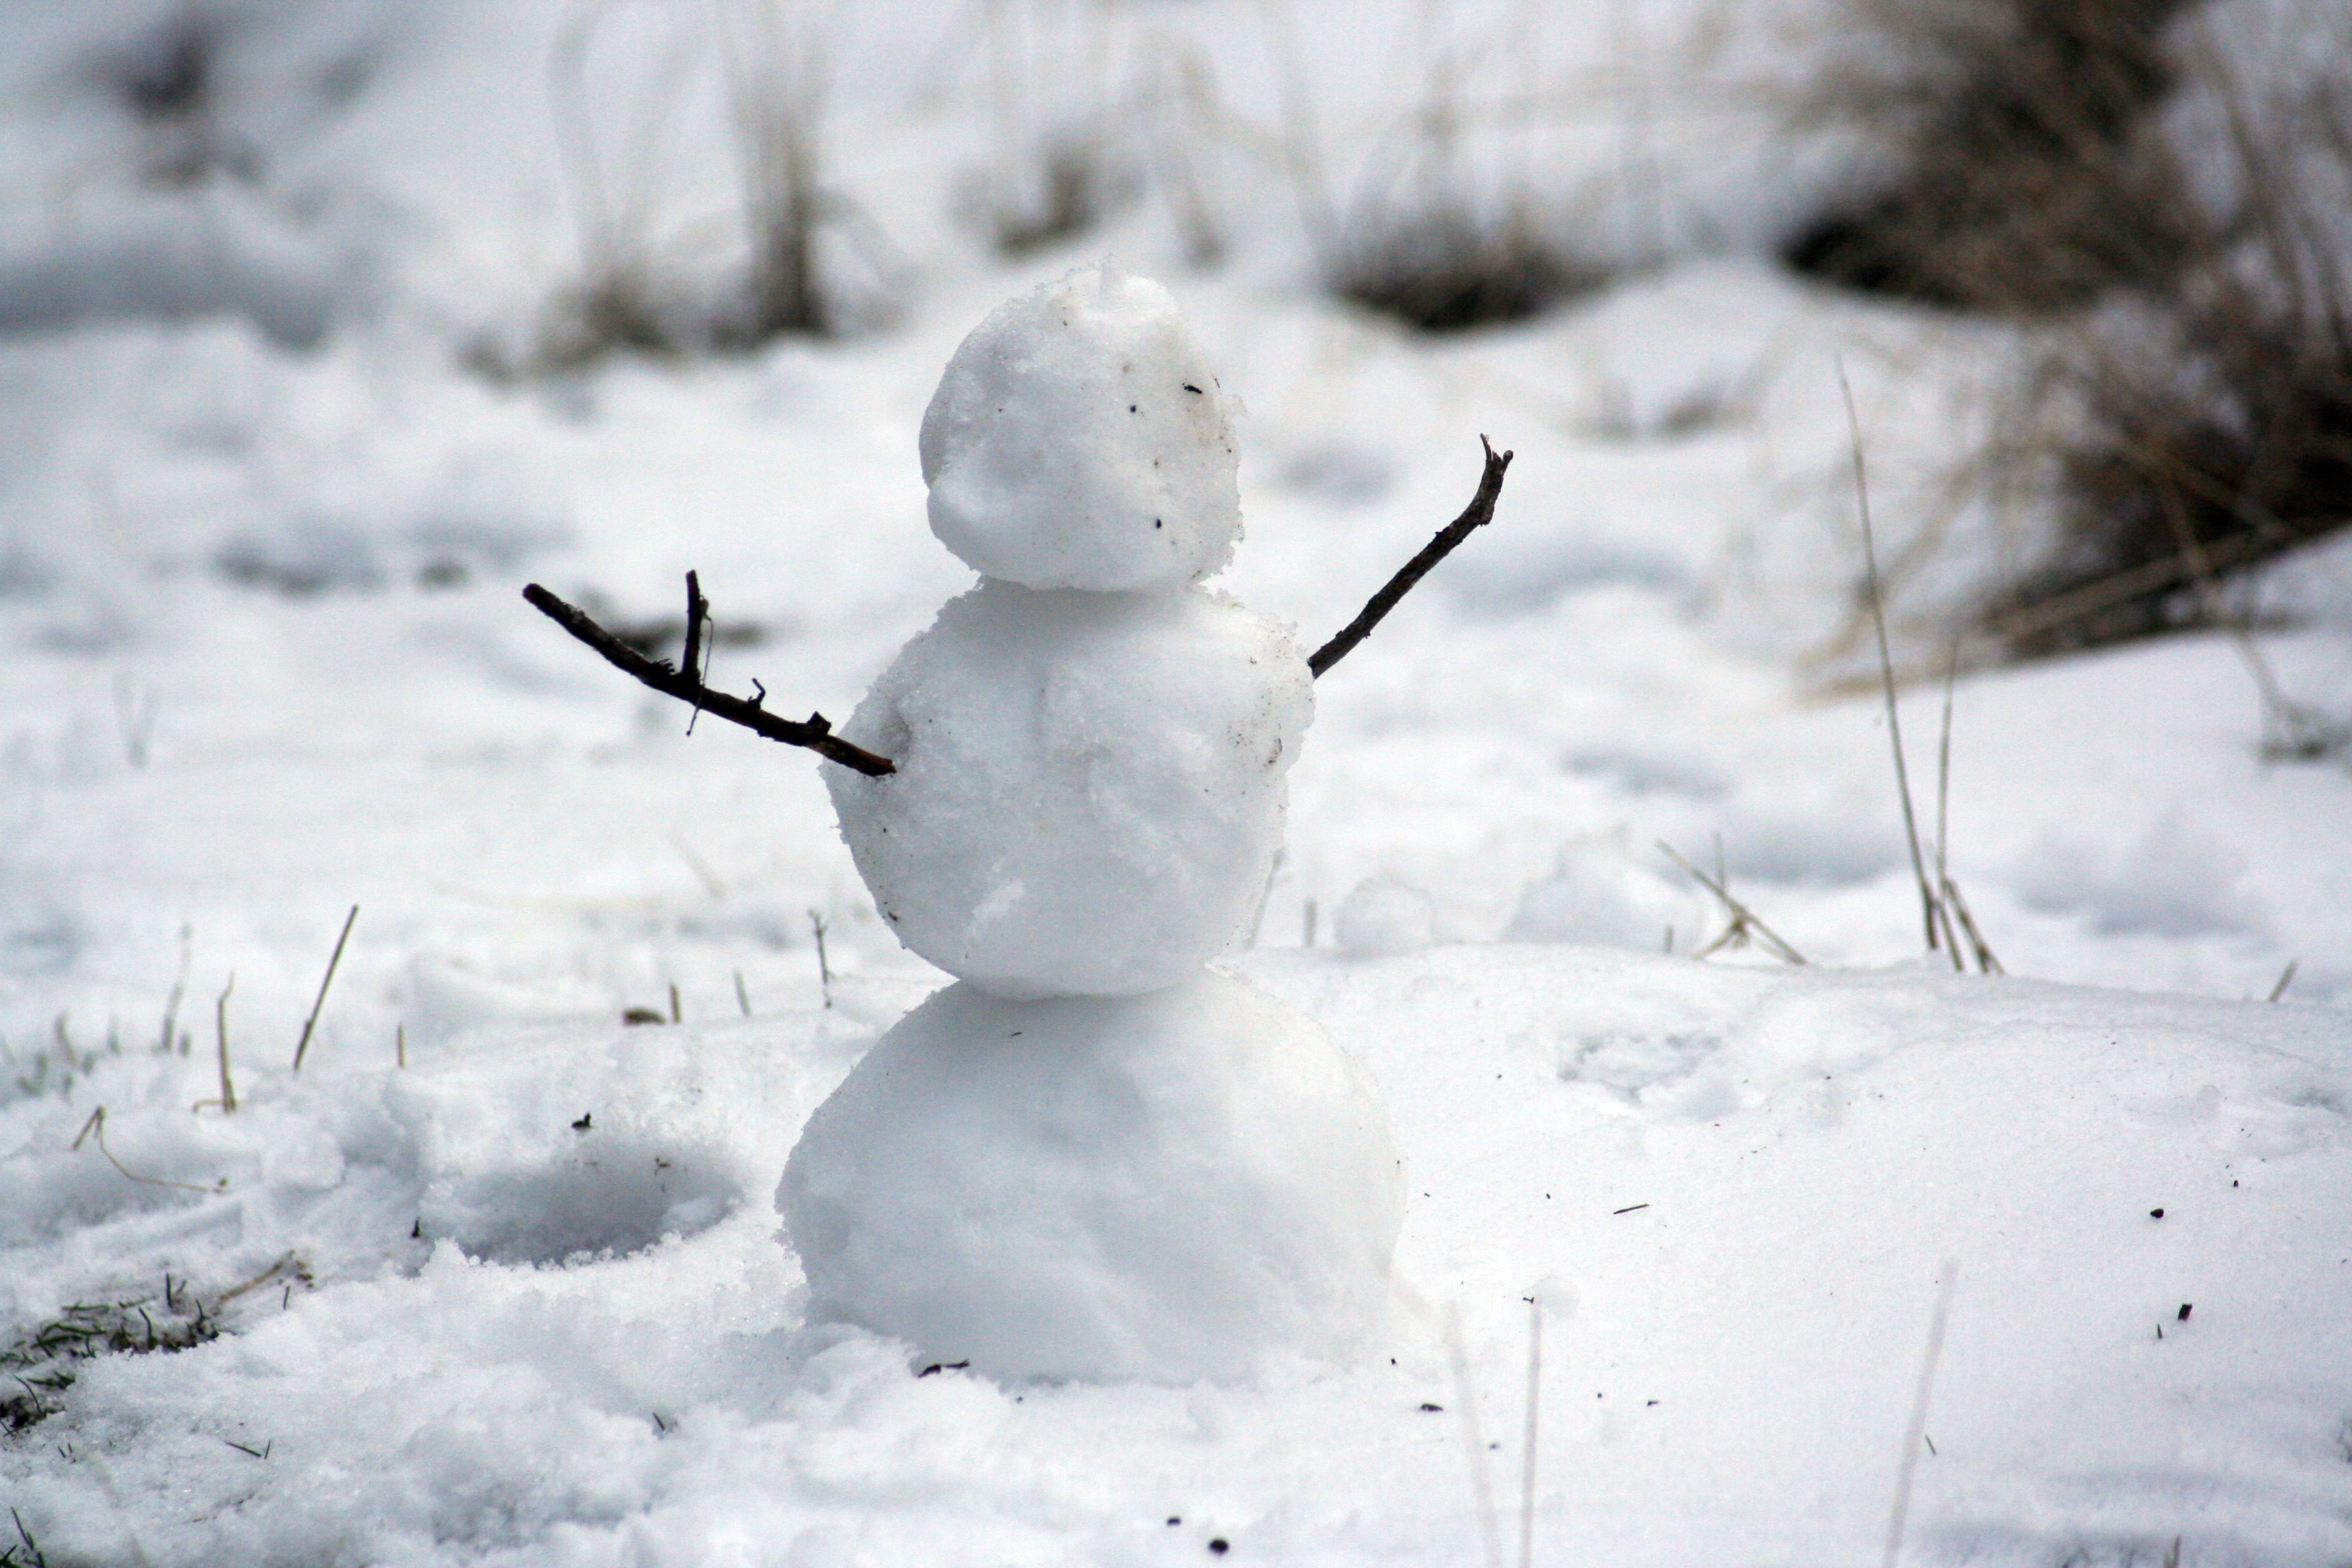 Three small balls of snow sit on top of each other while twigs stick out on either side to make a faceless snowman